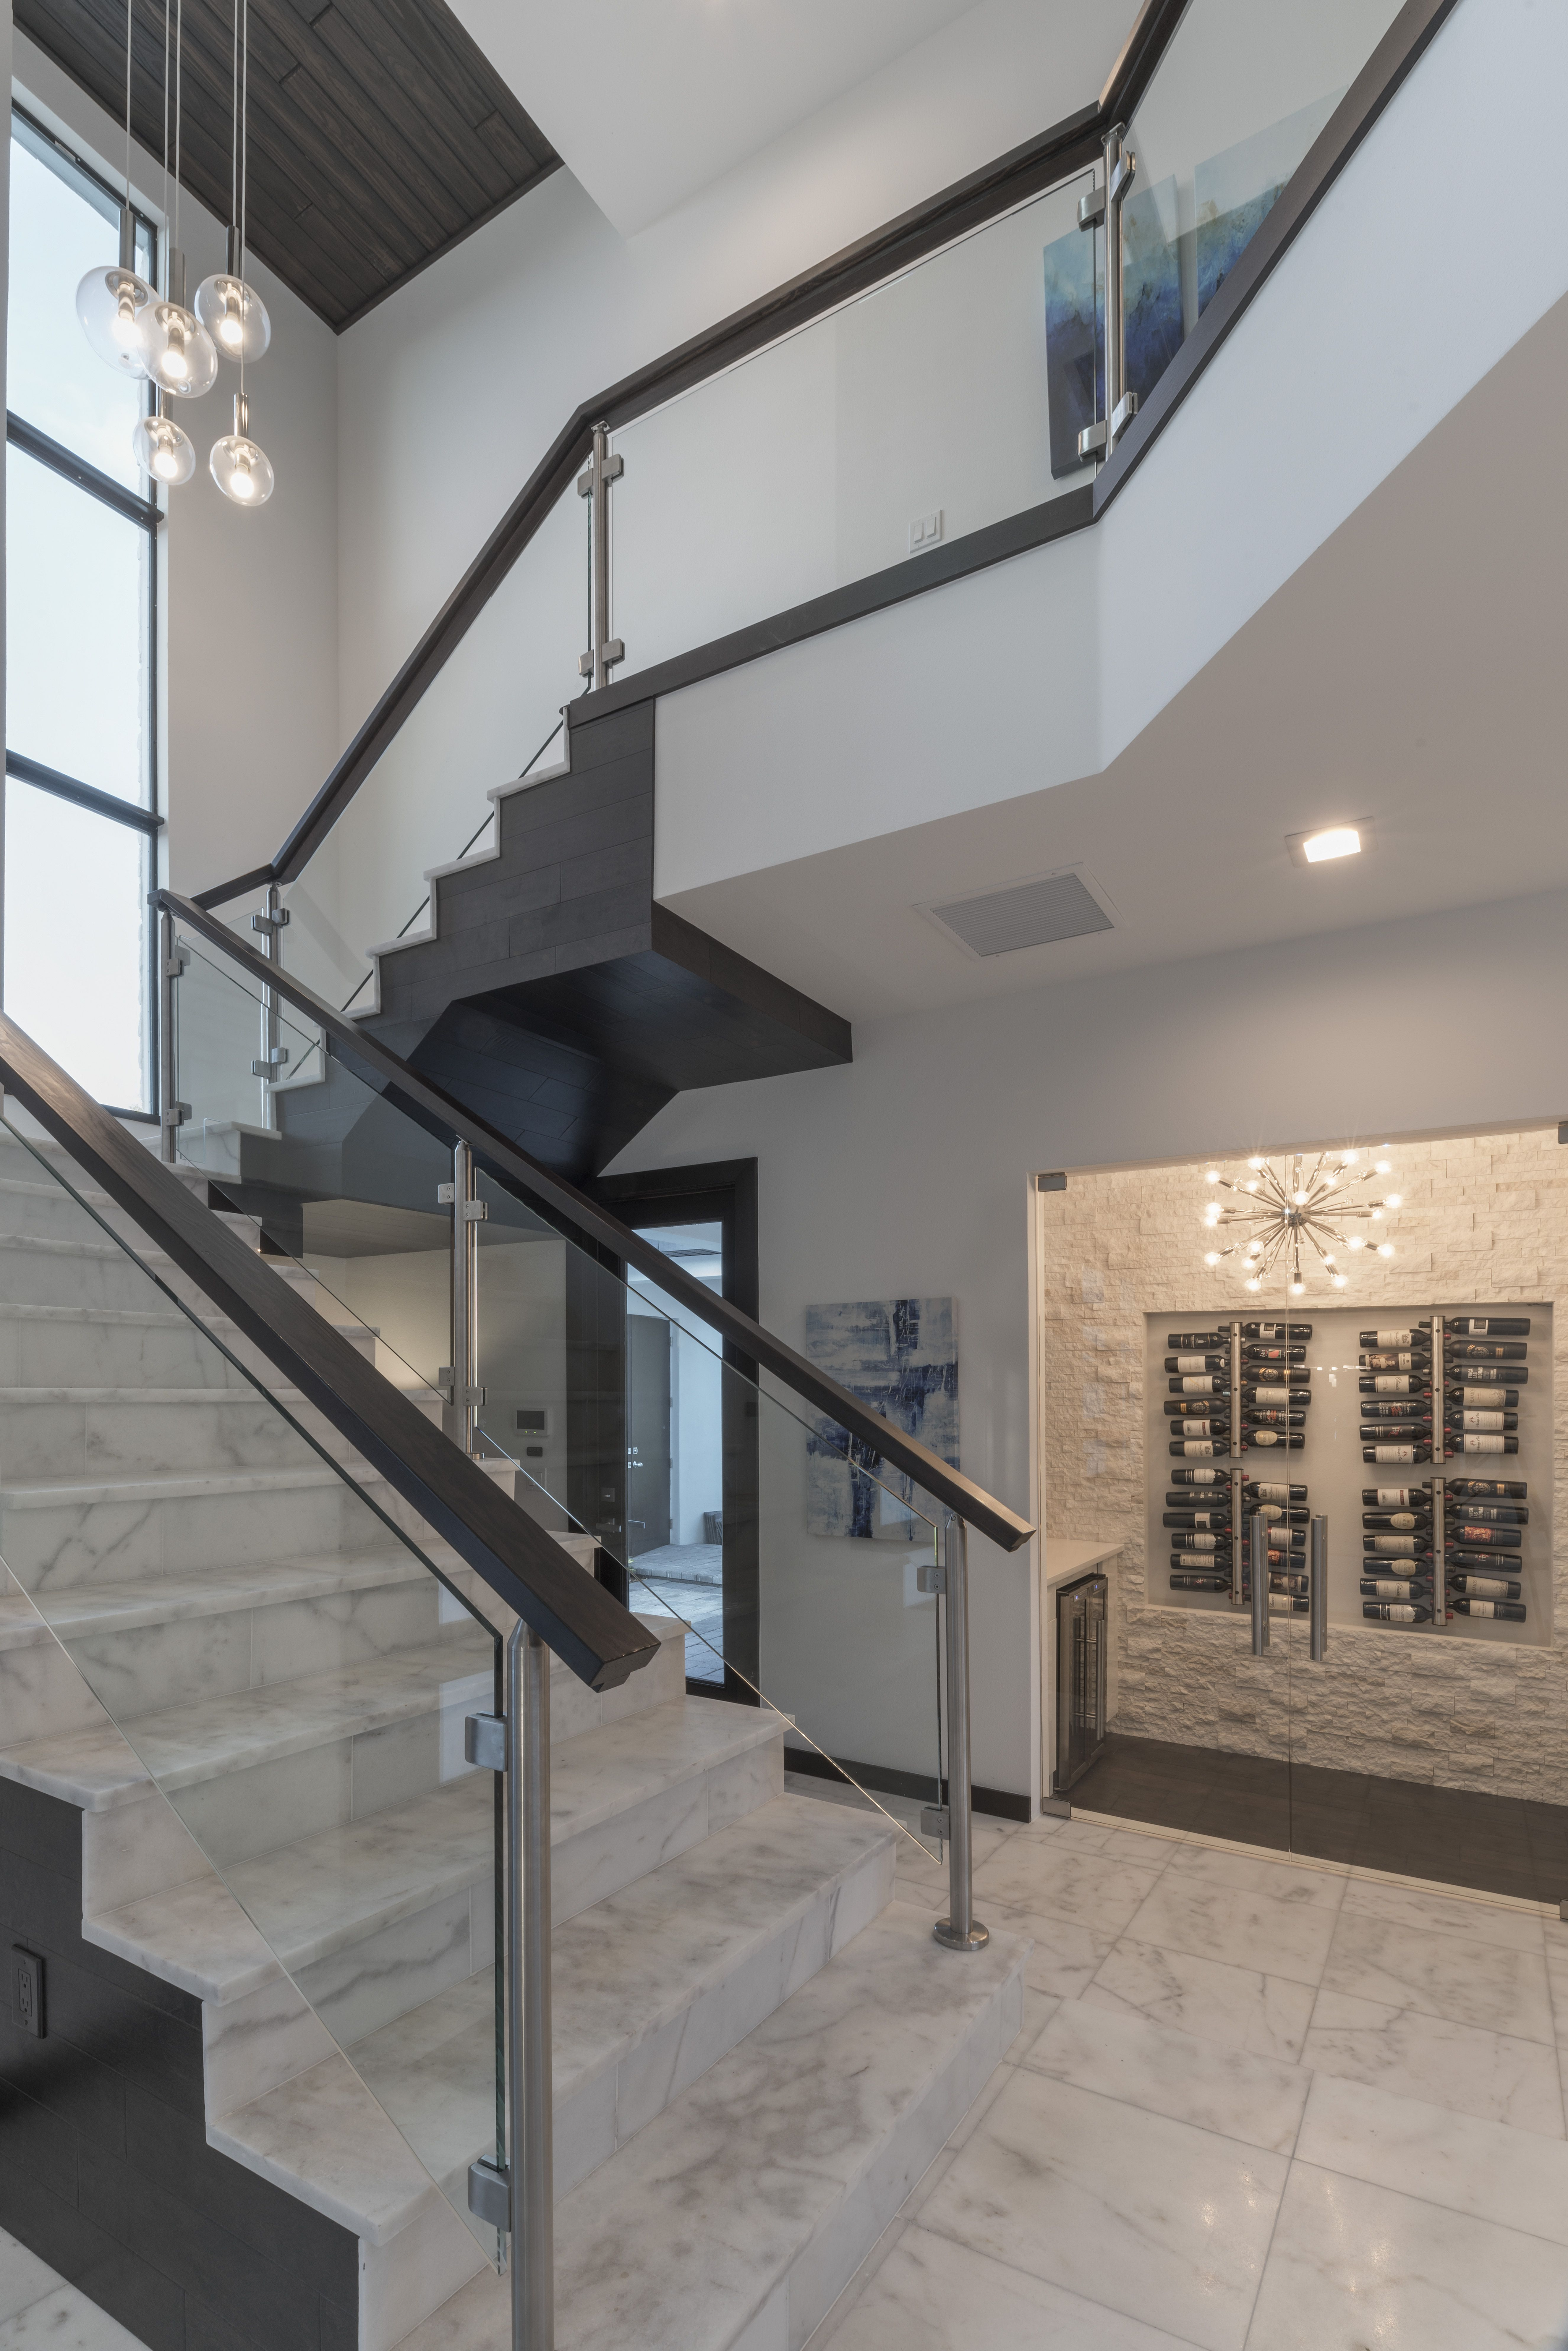 Best Glass Panel Staircase With Espresso Stained Wood Railings 400 x 300